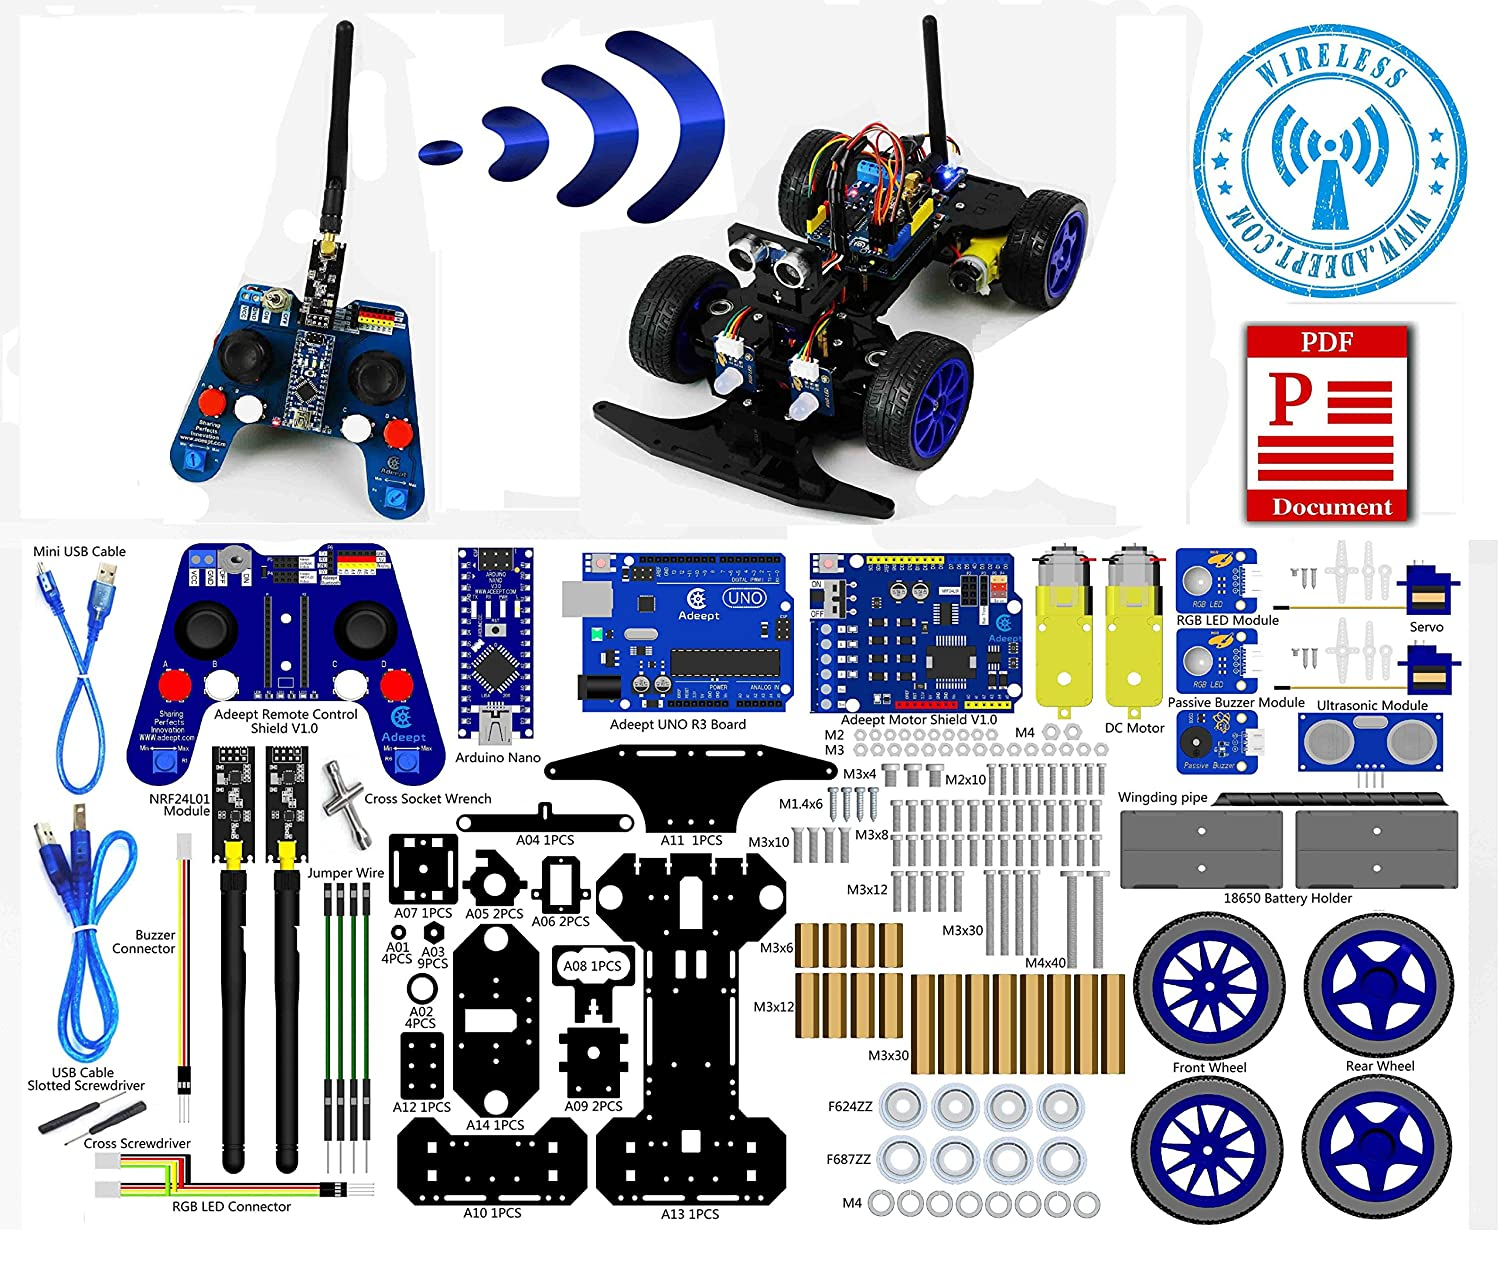 Adeept Smart Car Kit For Arduino Remote Control Based On Stepper Nrf24l01 24g Wireless Robot Starter Robotics Model Learning With